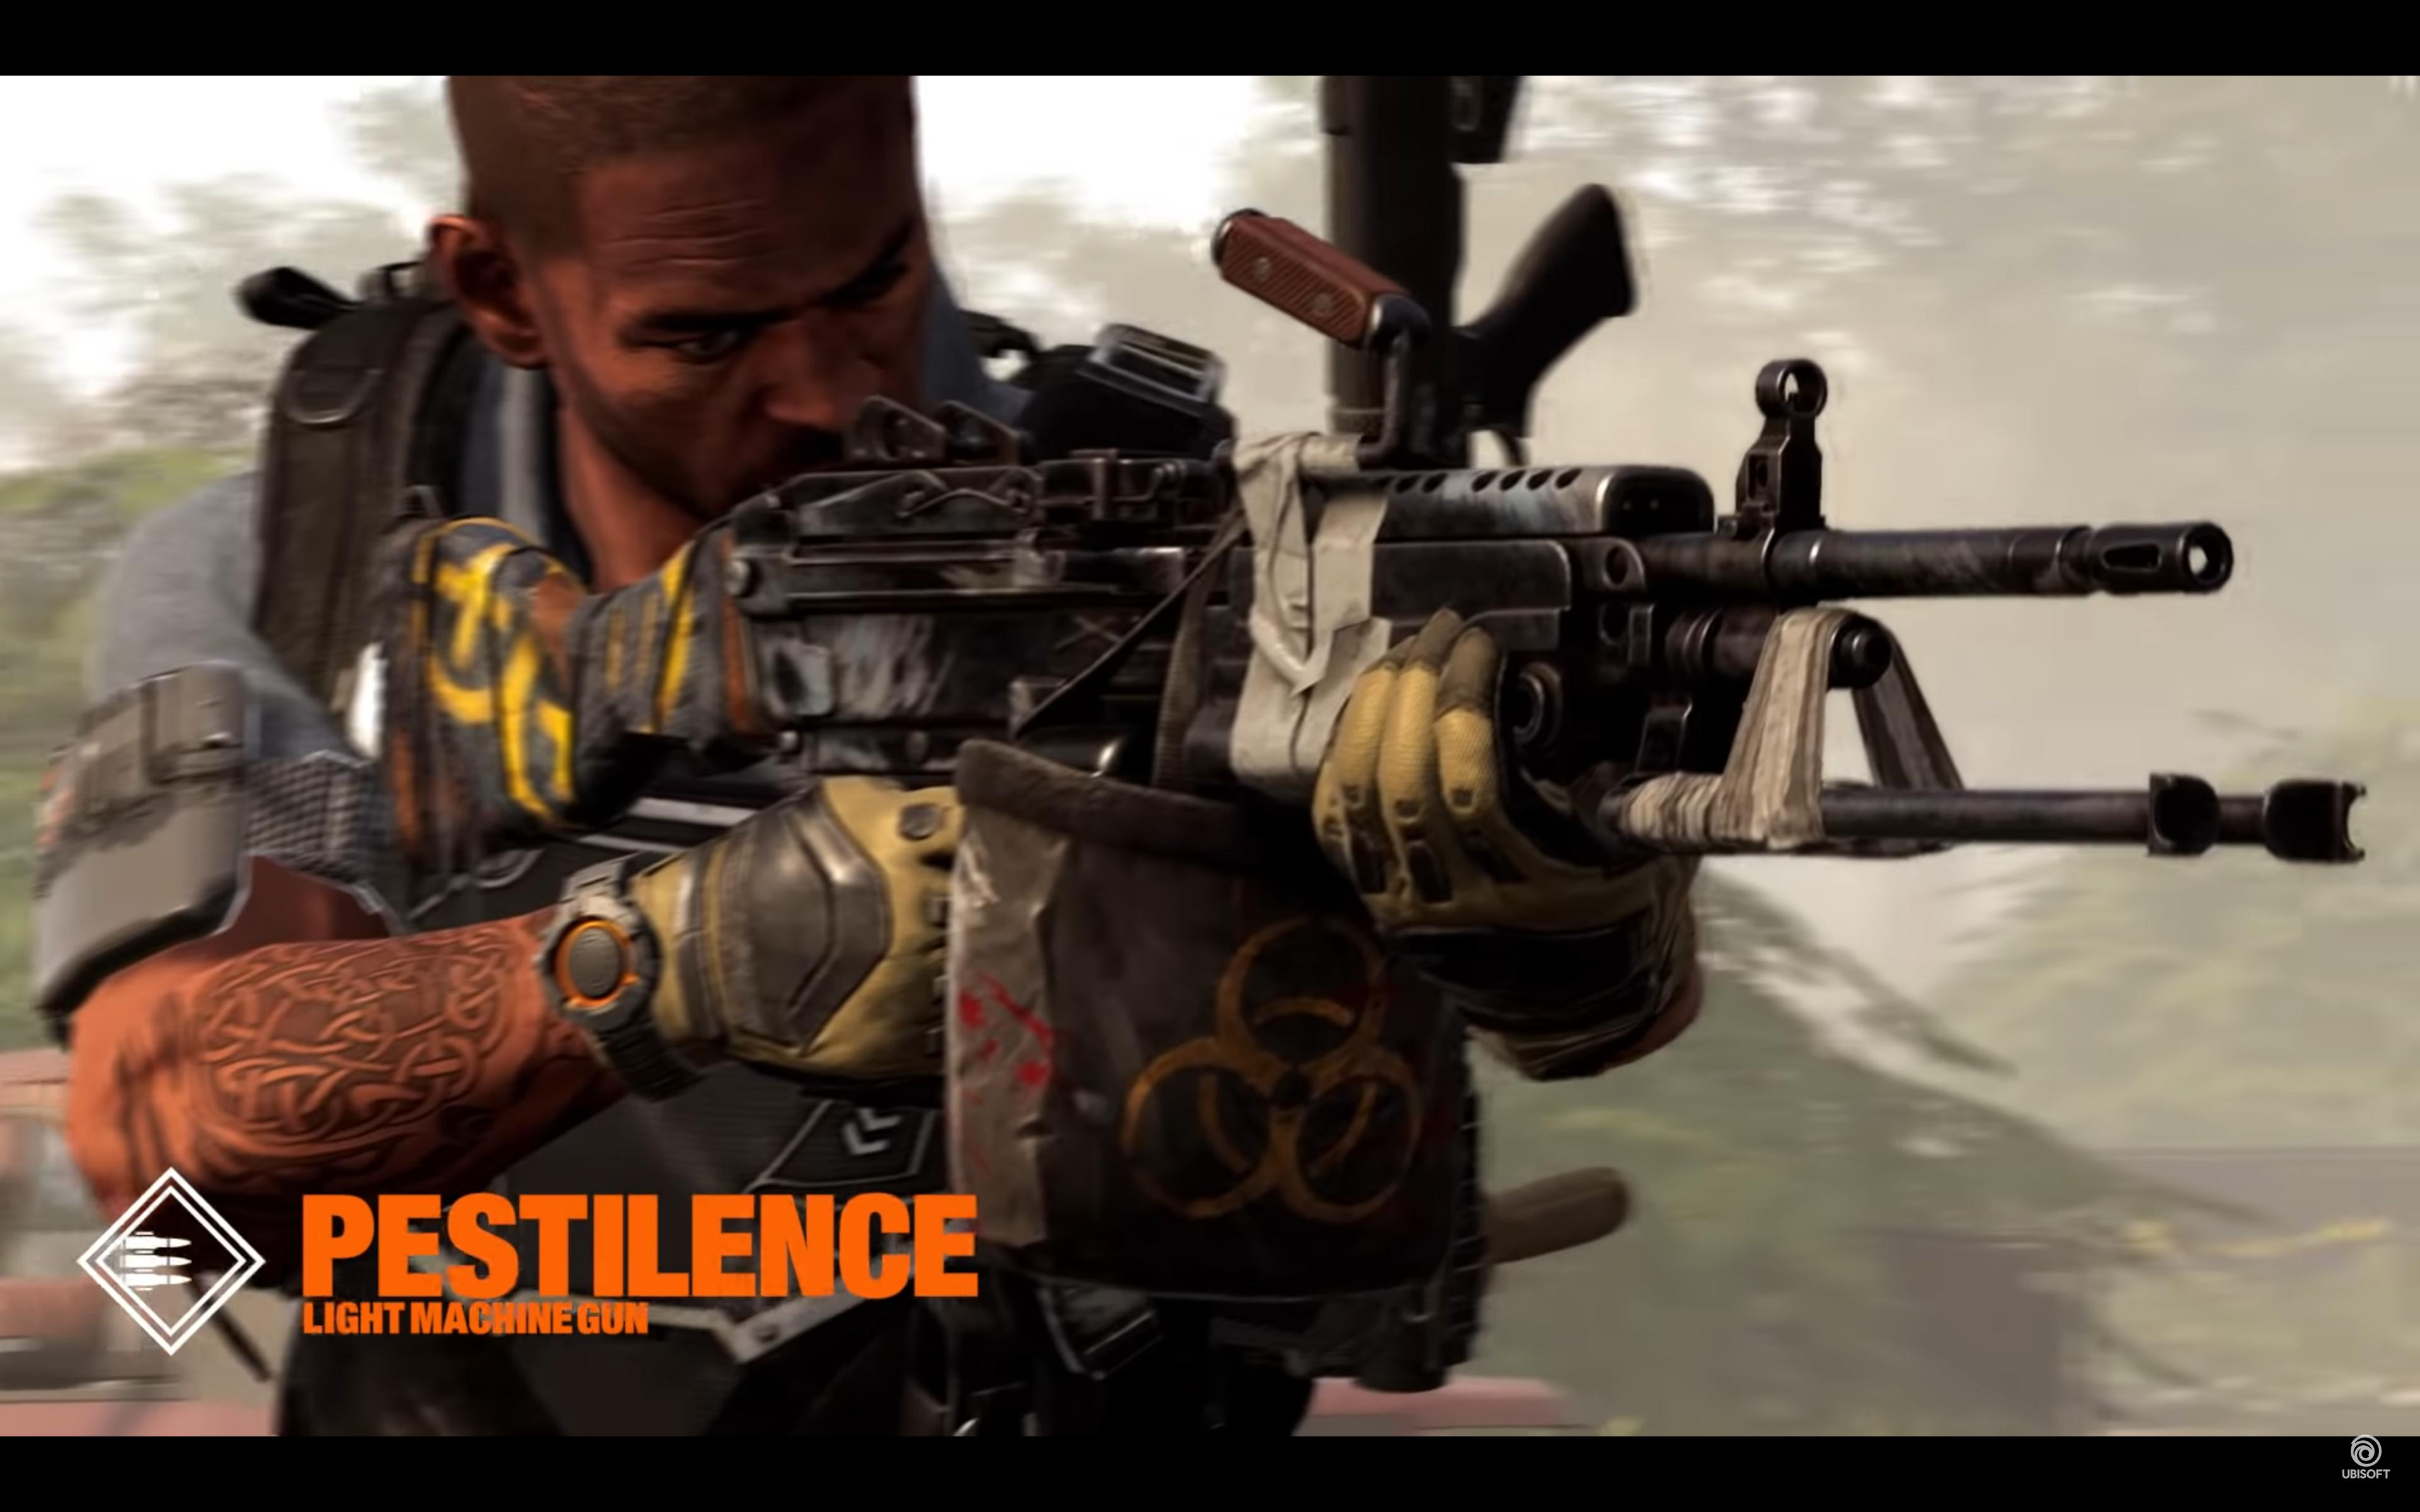 Division 2 Pestilence guide: How to get the Exotic LMG | GamesRadar+